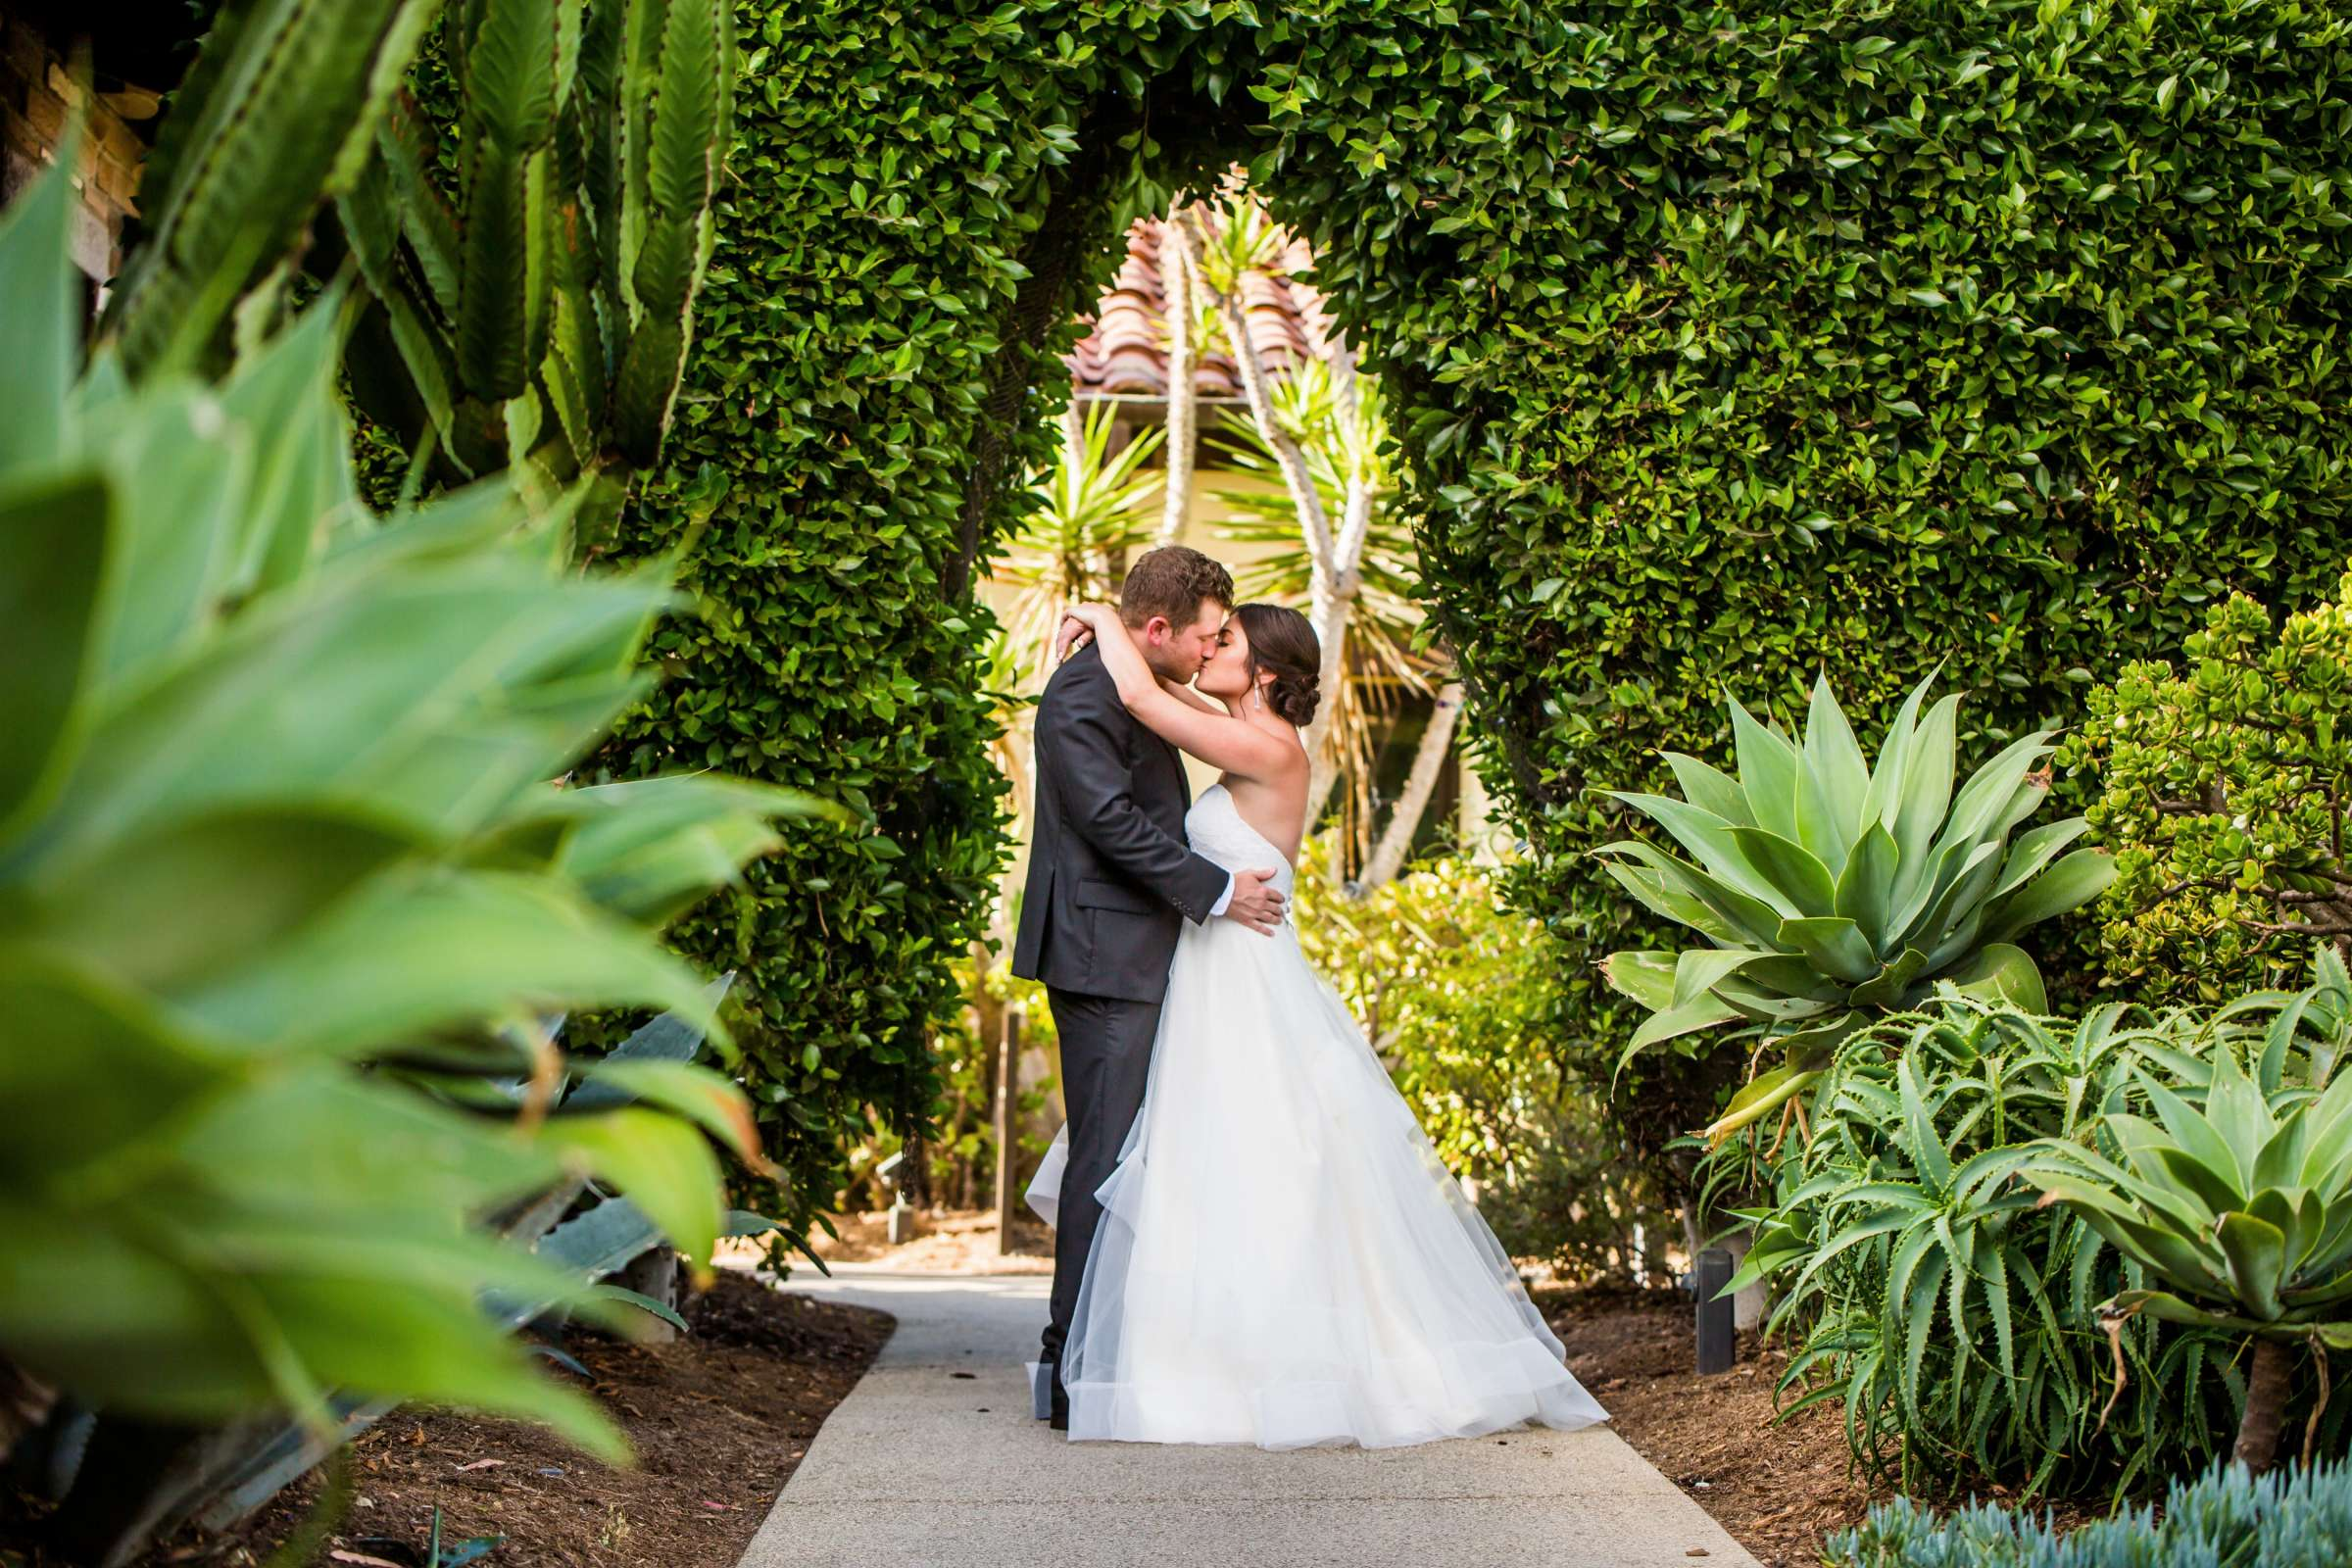 Estancia Wedding coordinated by White Lace Events & Design, Kelli and Guy Wedding Photo #1 by True Photography